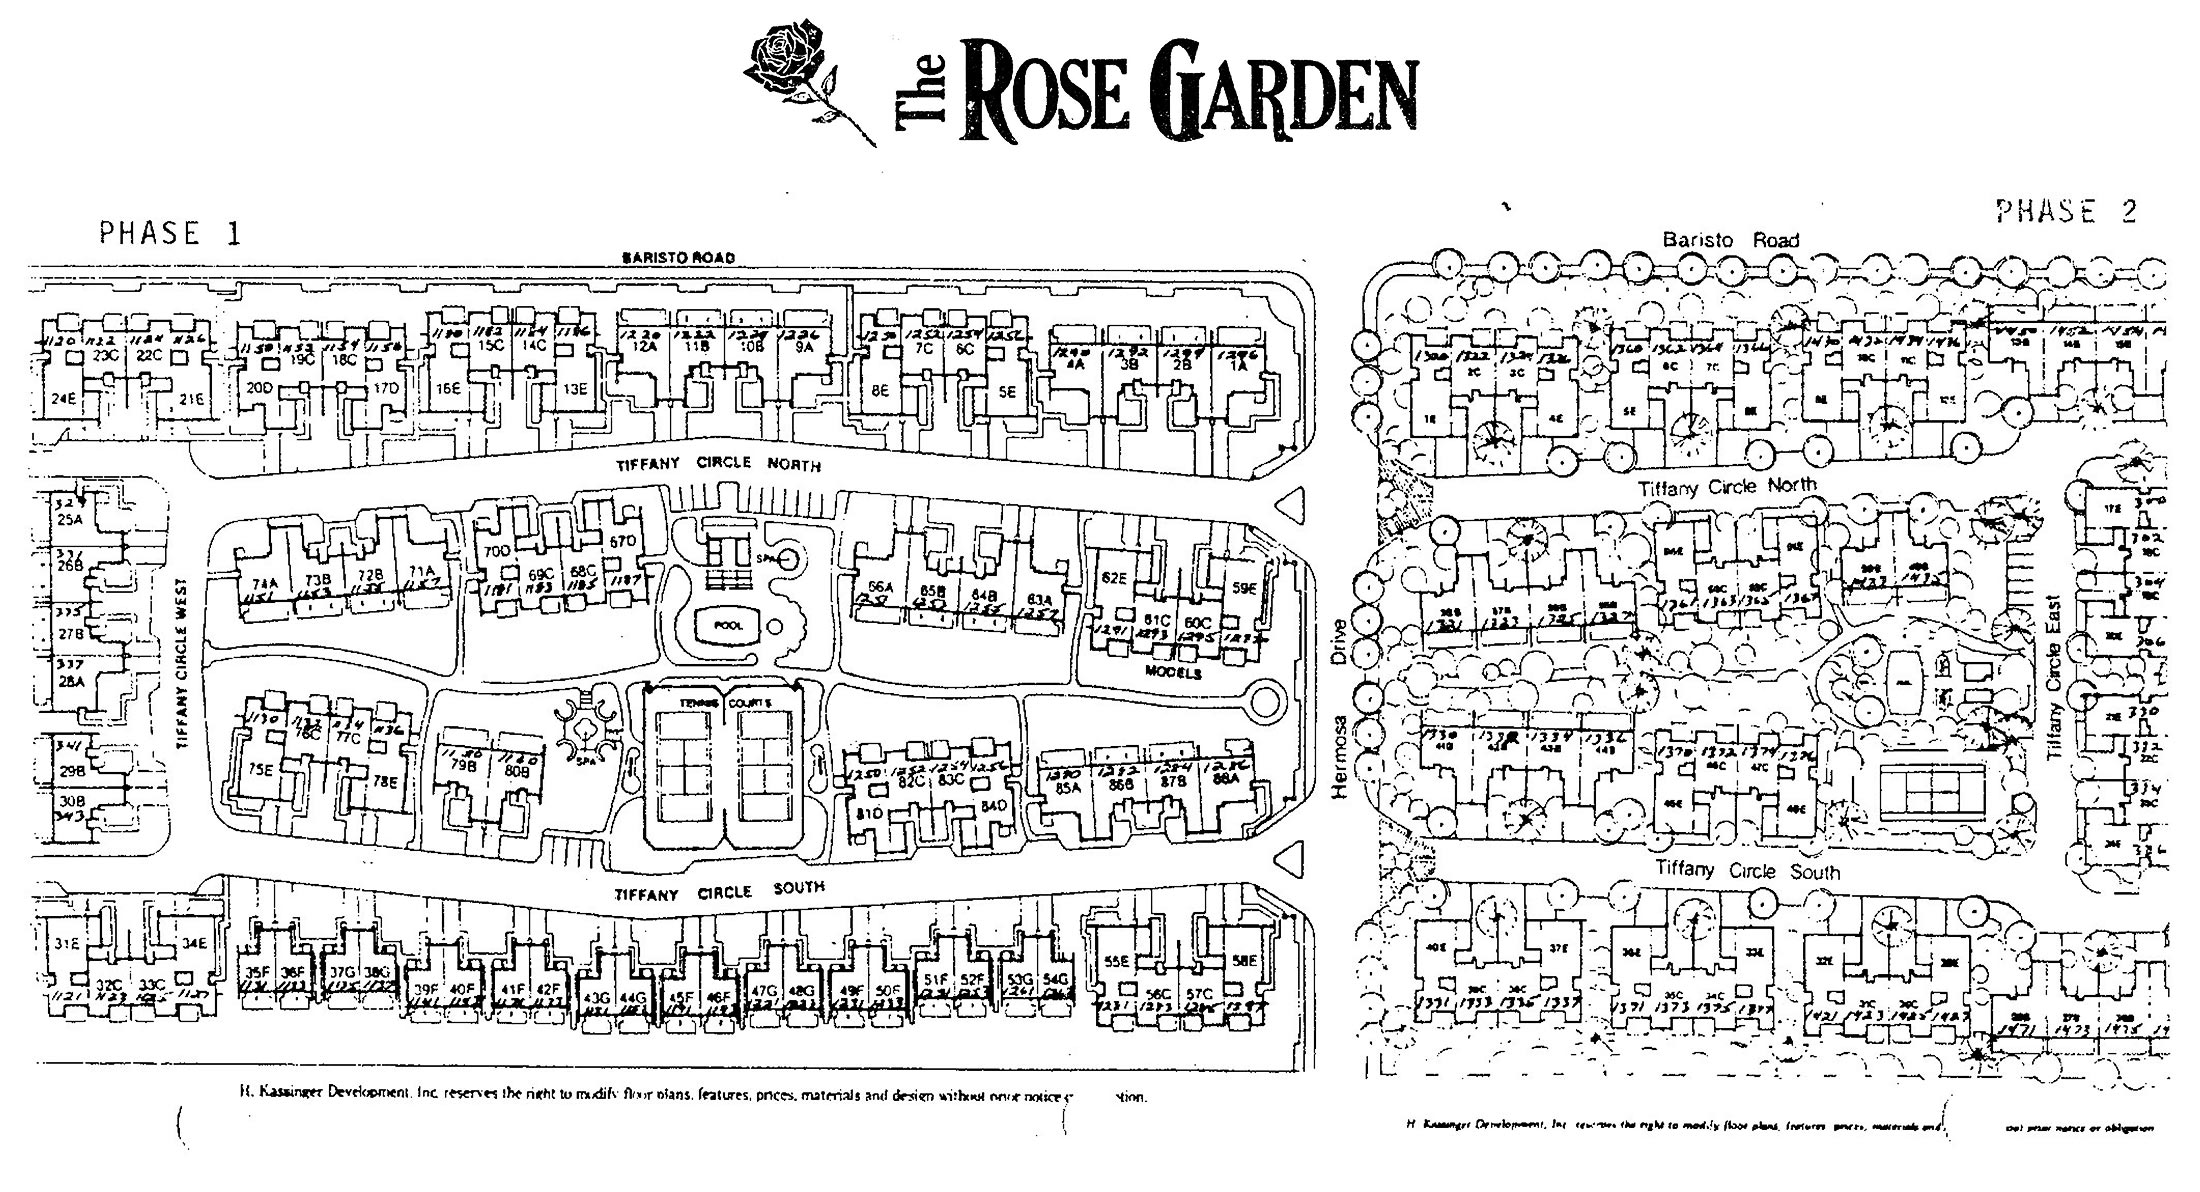 palm springs rose garden community map - Rosa Gardens Apartments Palm Springs Ca